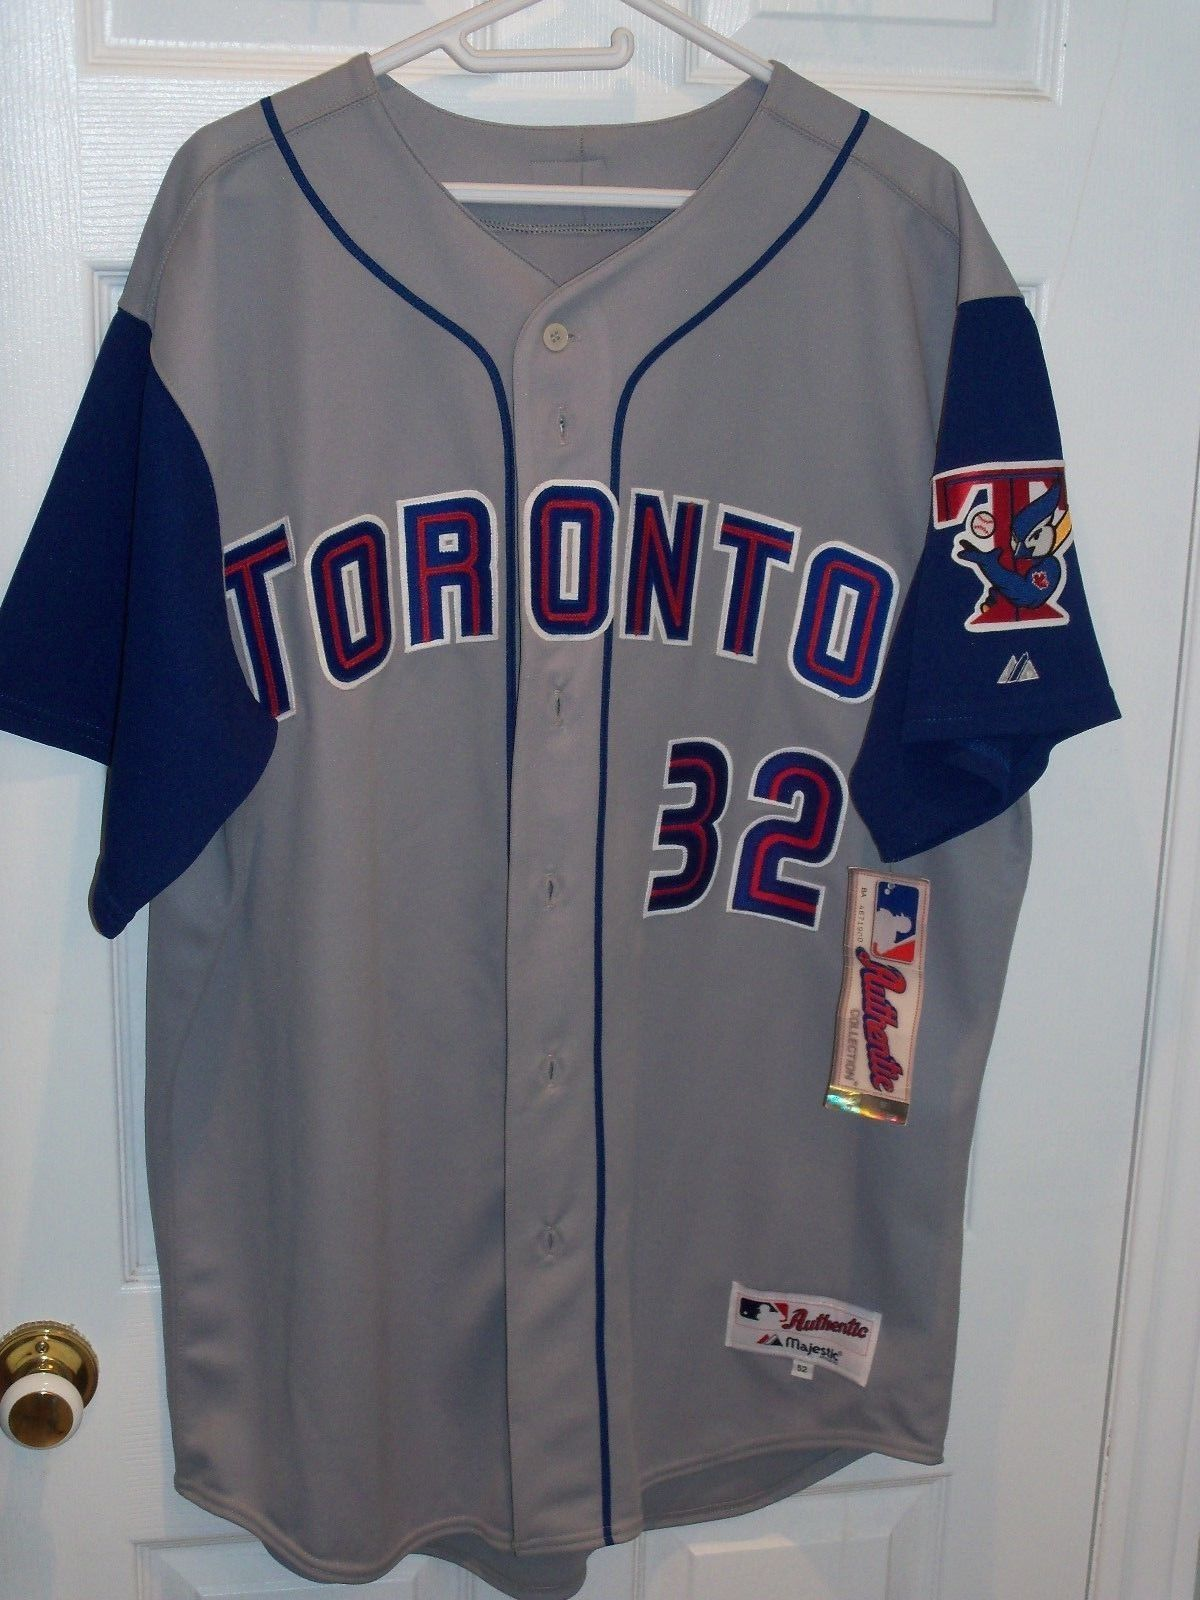 54d56387a59 Roy Halladay Toronto Blue Jays Jersey BRAND NEW (No others like it on Ebay)  RARE